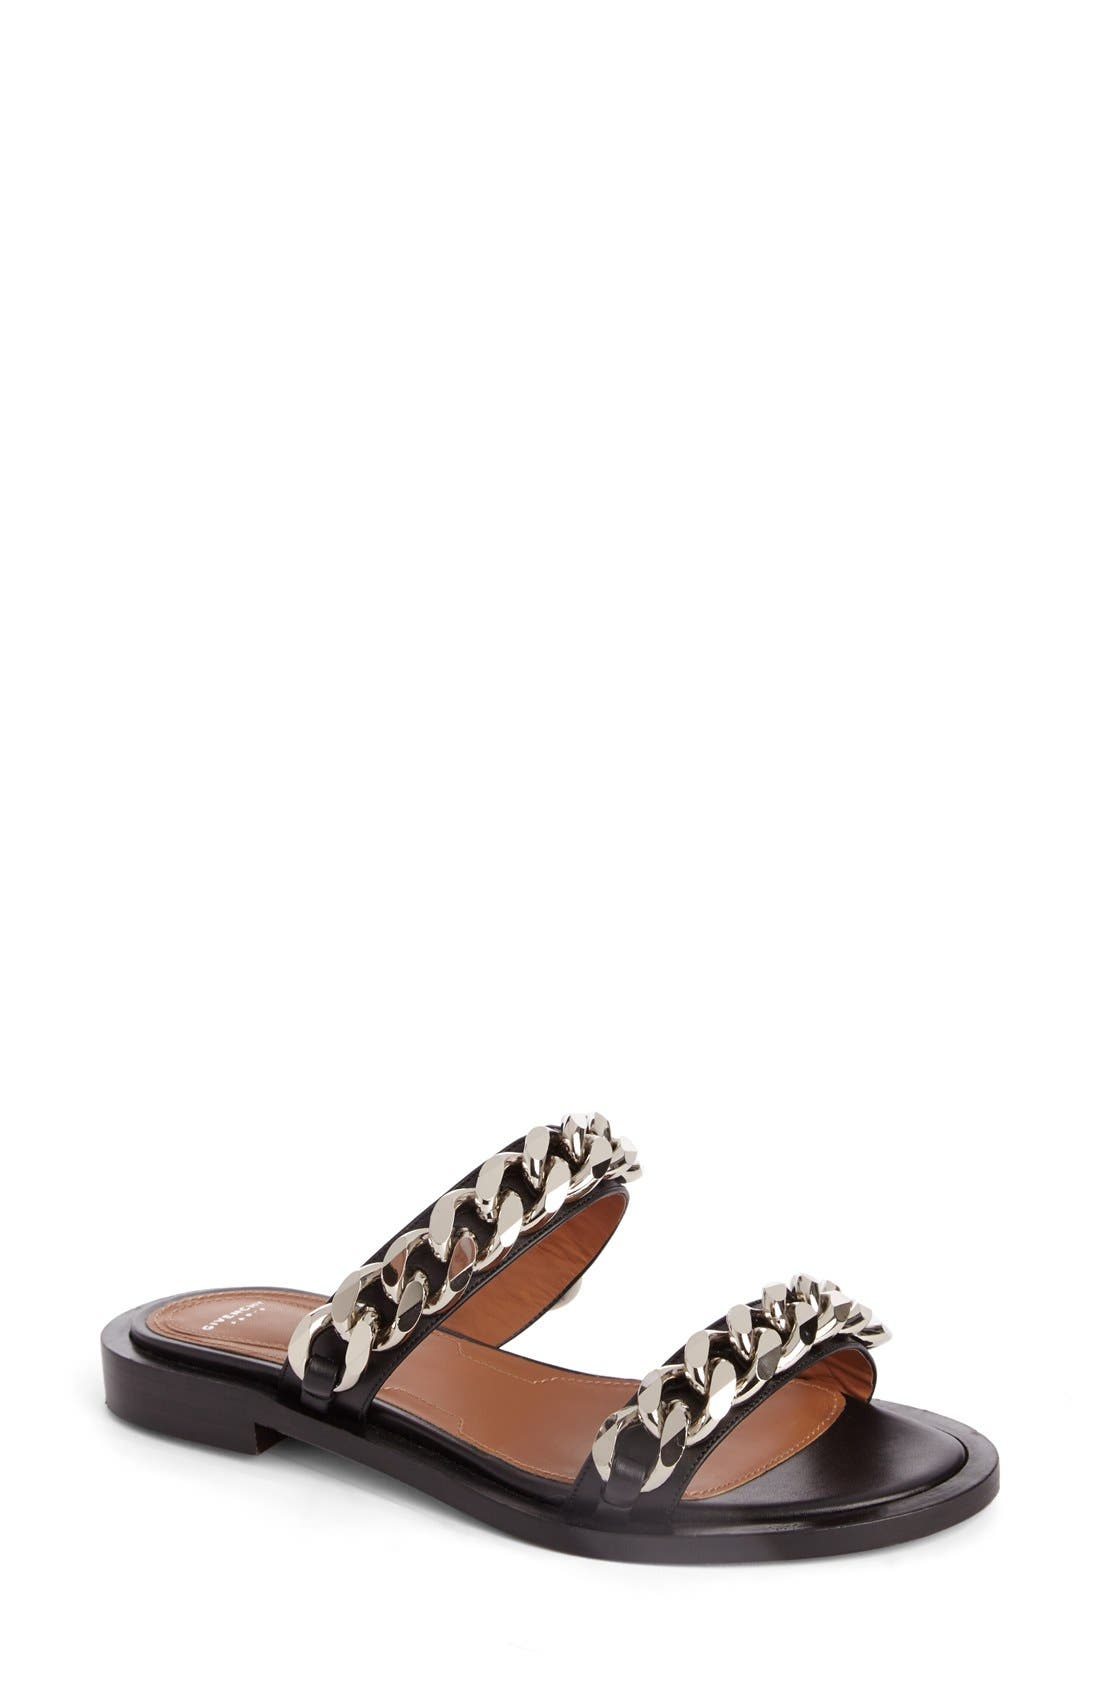 Main Image - Givenchy Double Chain Slide Sandal (Women)